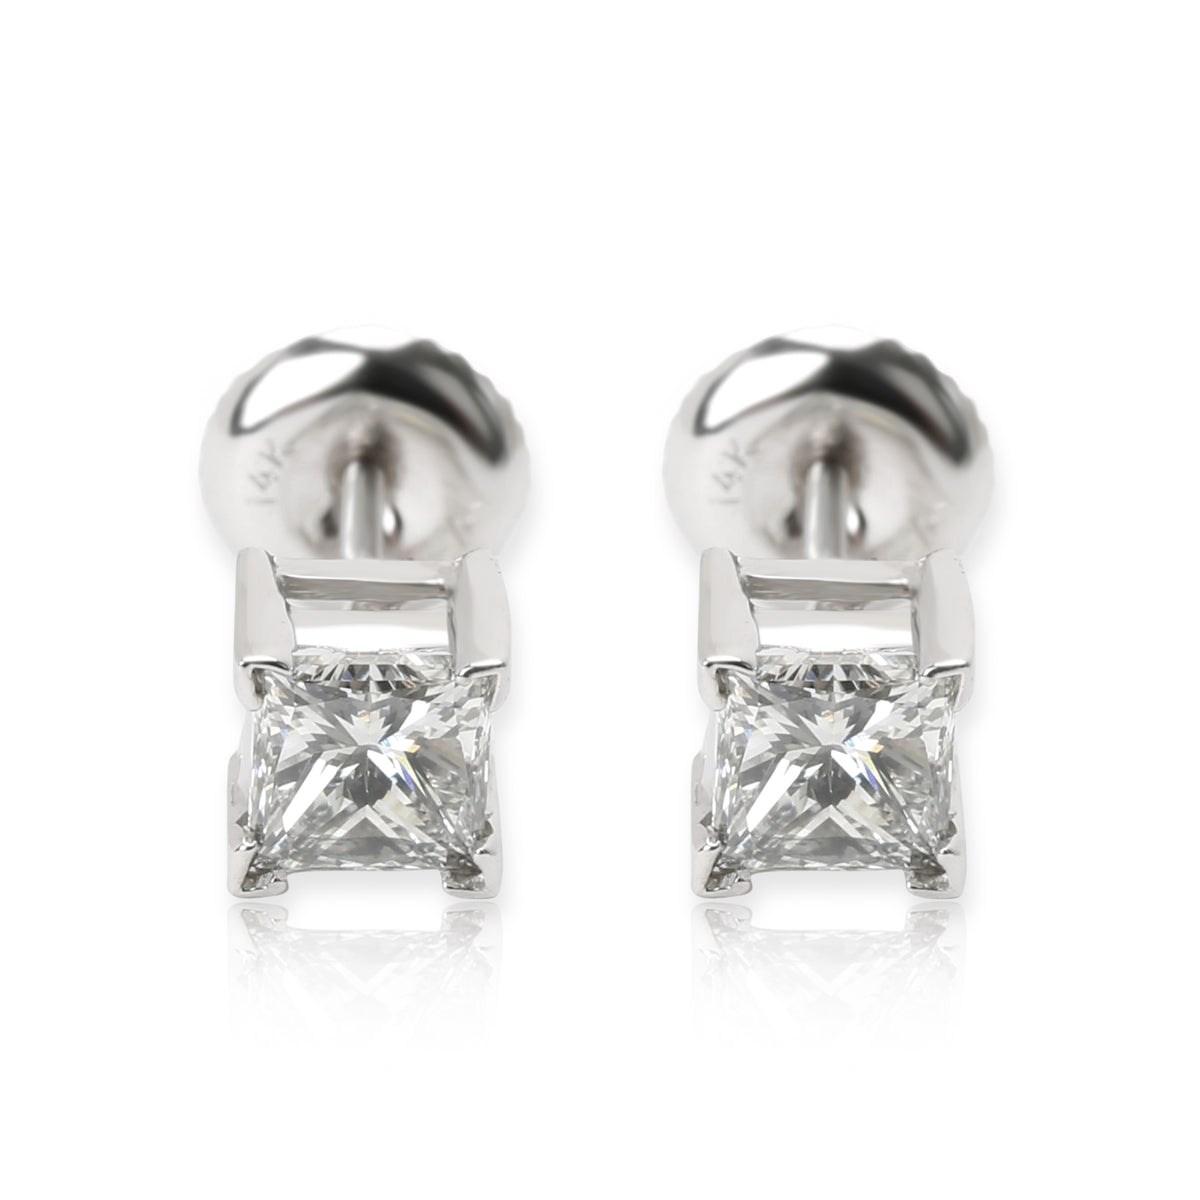 IGI Certified Diamond Princess Cut Stud Earrings in 14K White Gold (1.02 CTW)